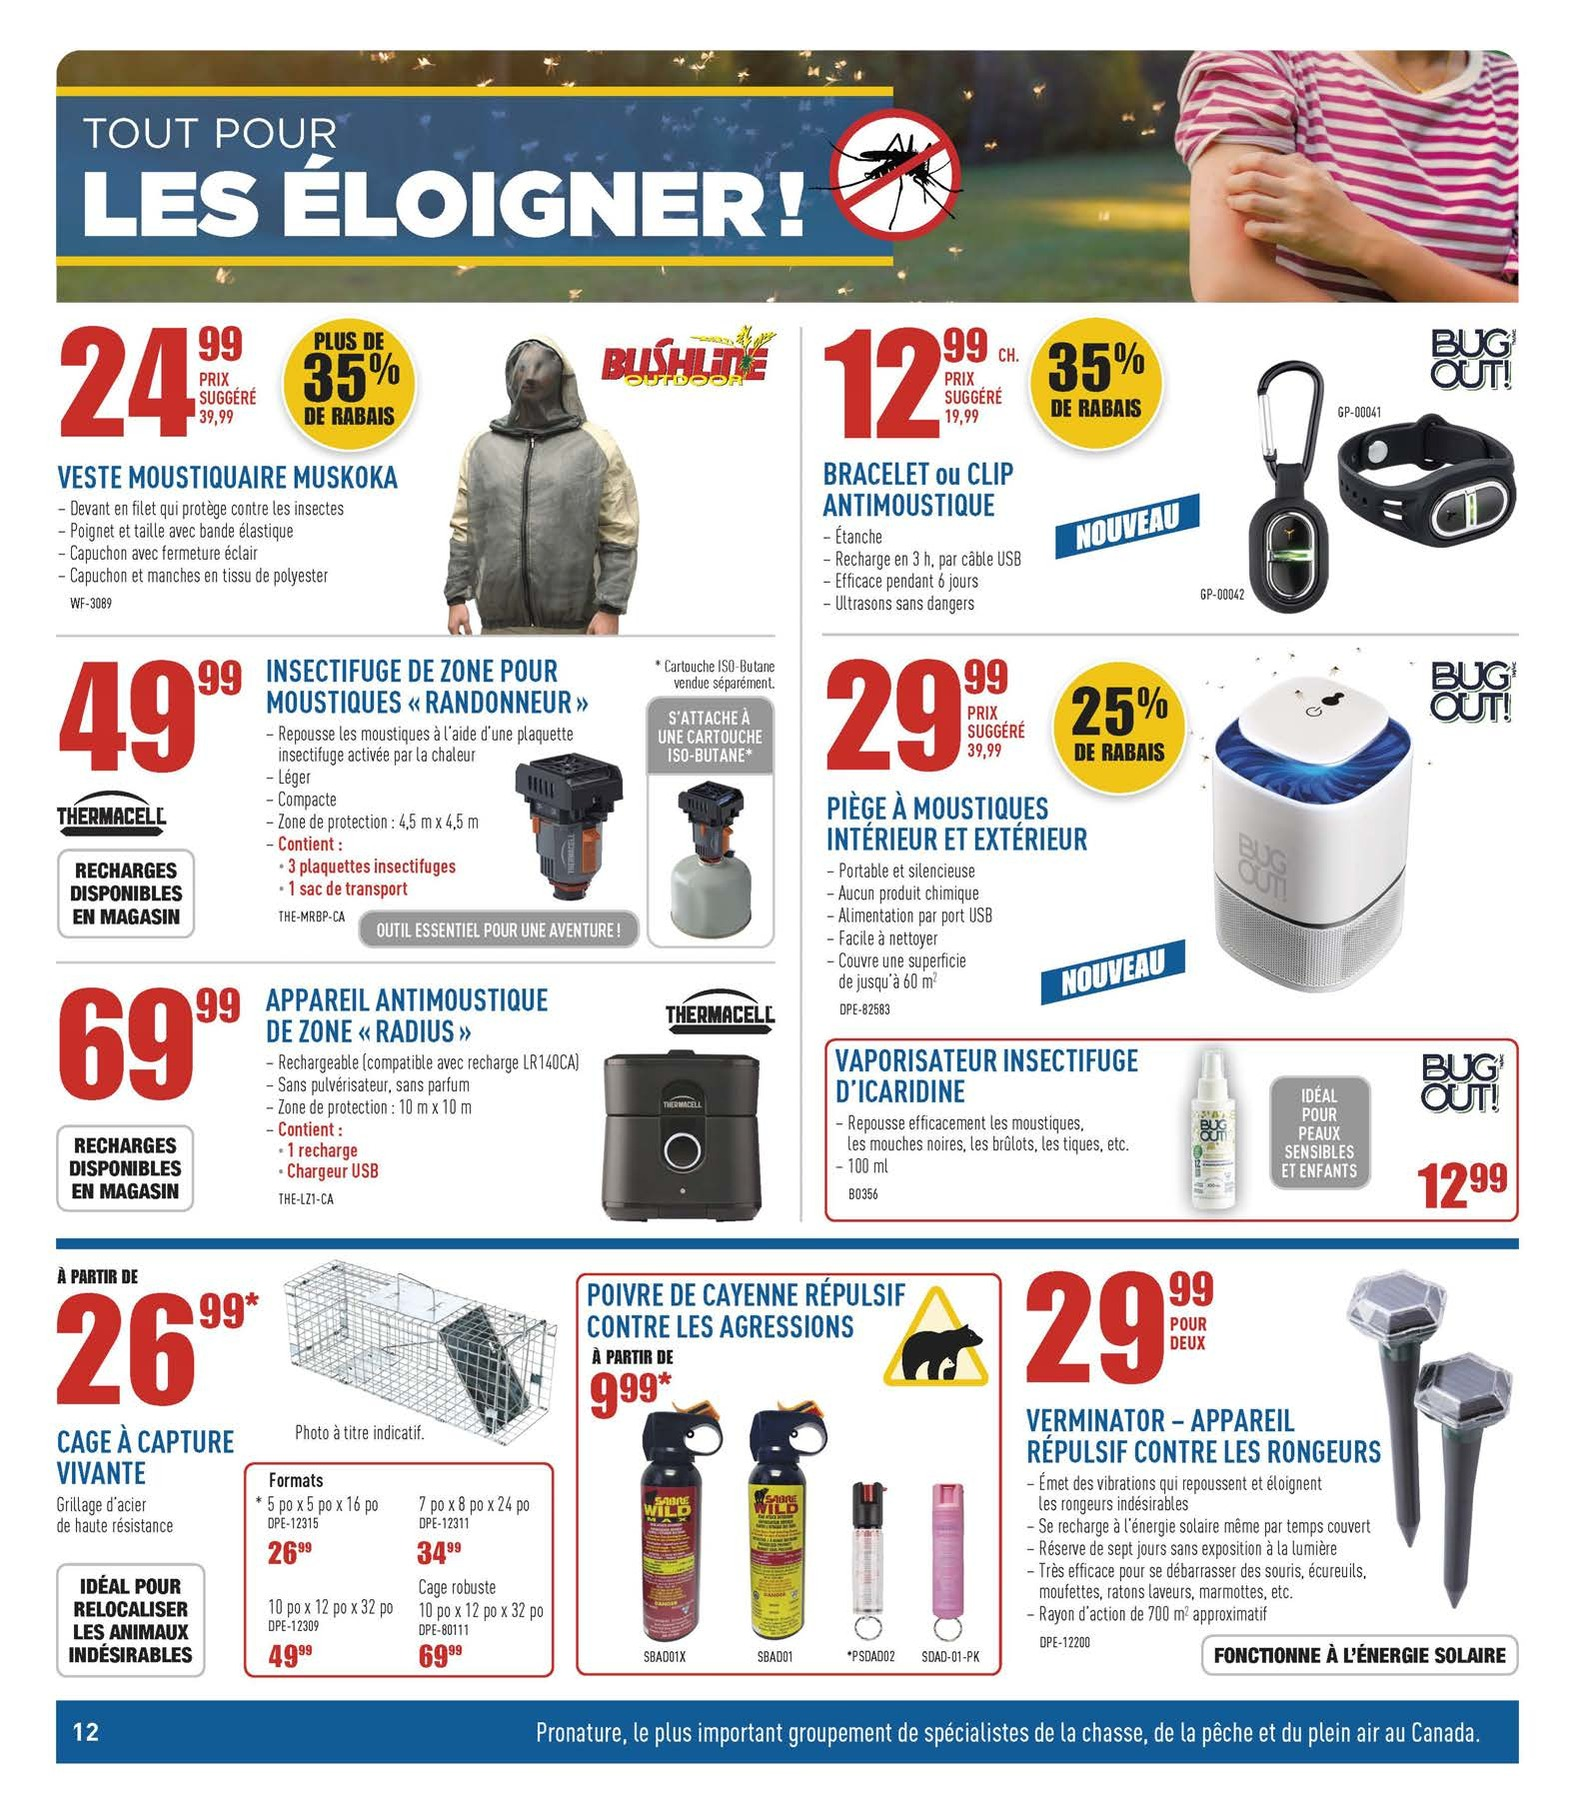 Flyer 210516 786 page 12 fr 1620160182